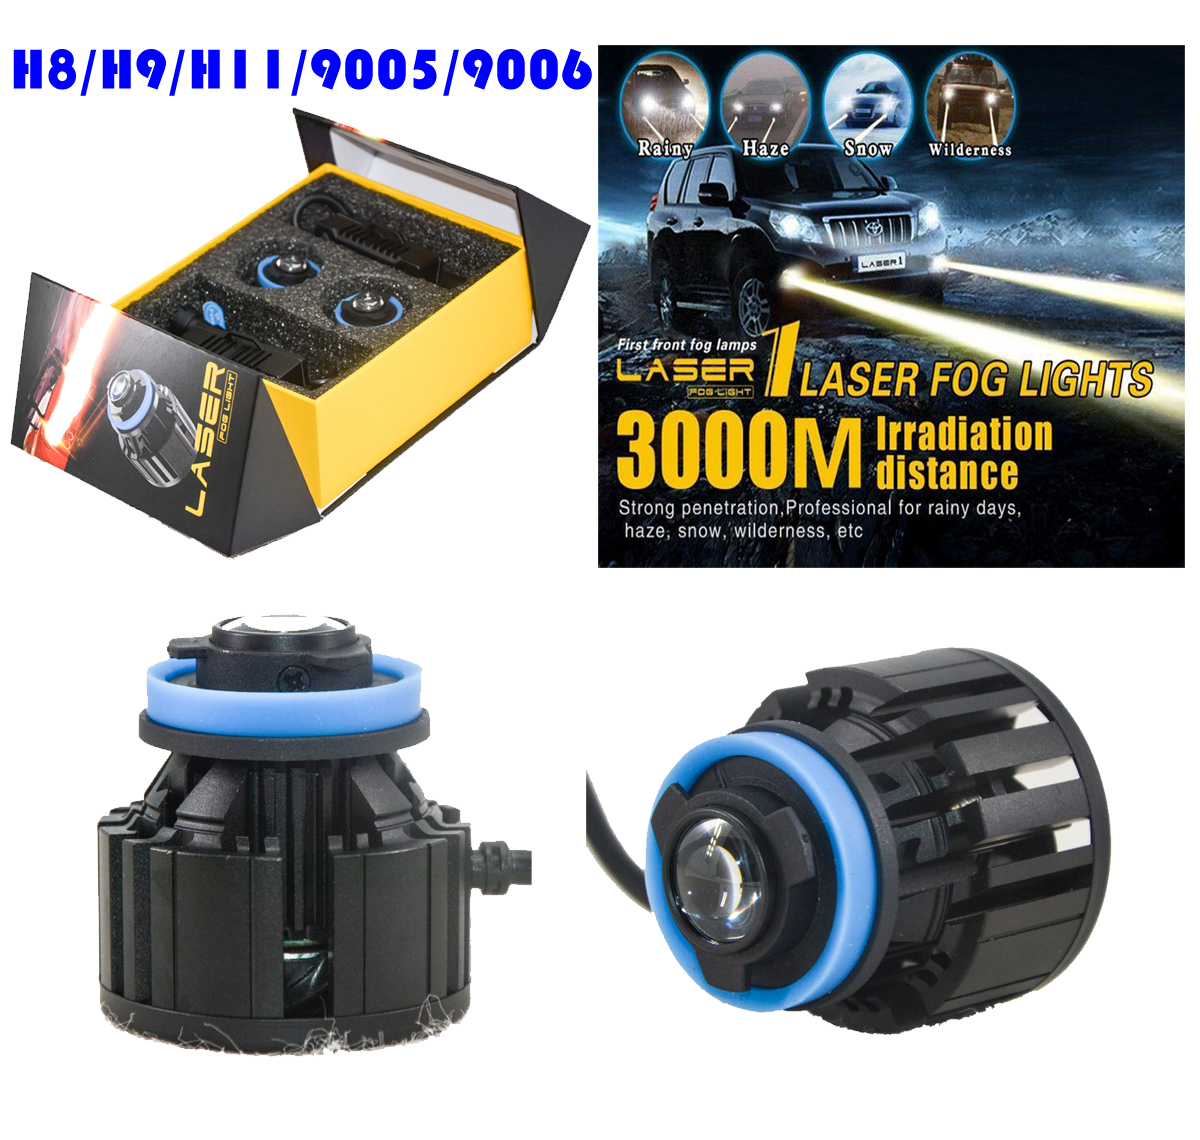 1 Set L1 LED Laser Fog Headlight Lights Bulbs H8 H9 H11 9005 9006 26W 2600LM 3000M Laser Meter Irradiation Distance Ultra Bright